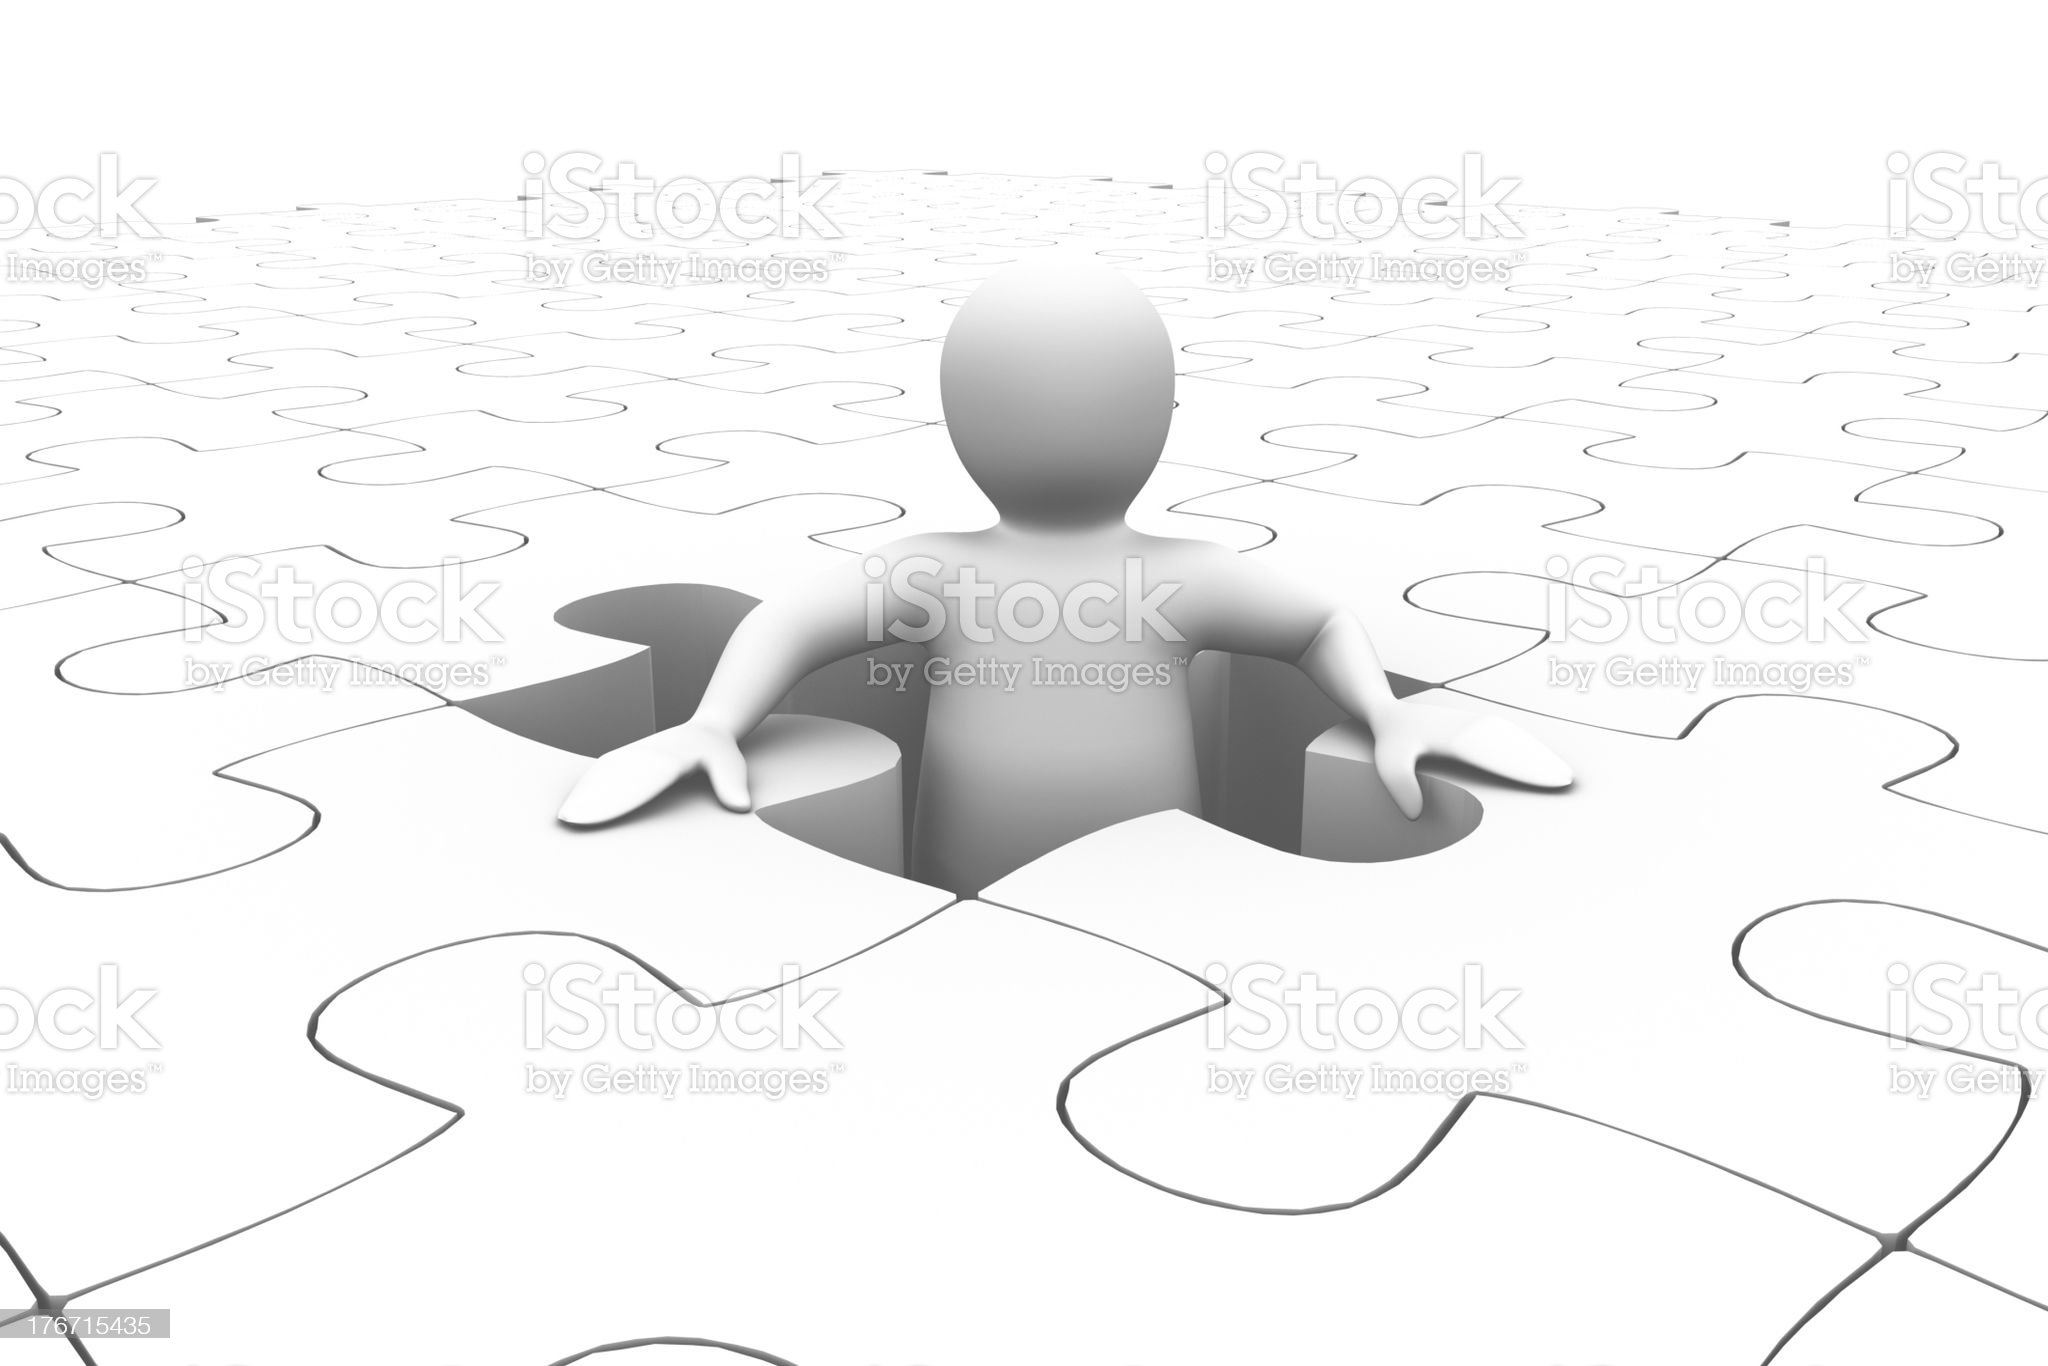 White human representation standing in the middle of jigsaw puzz royalty-free stock photo